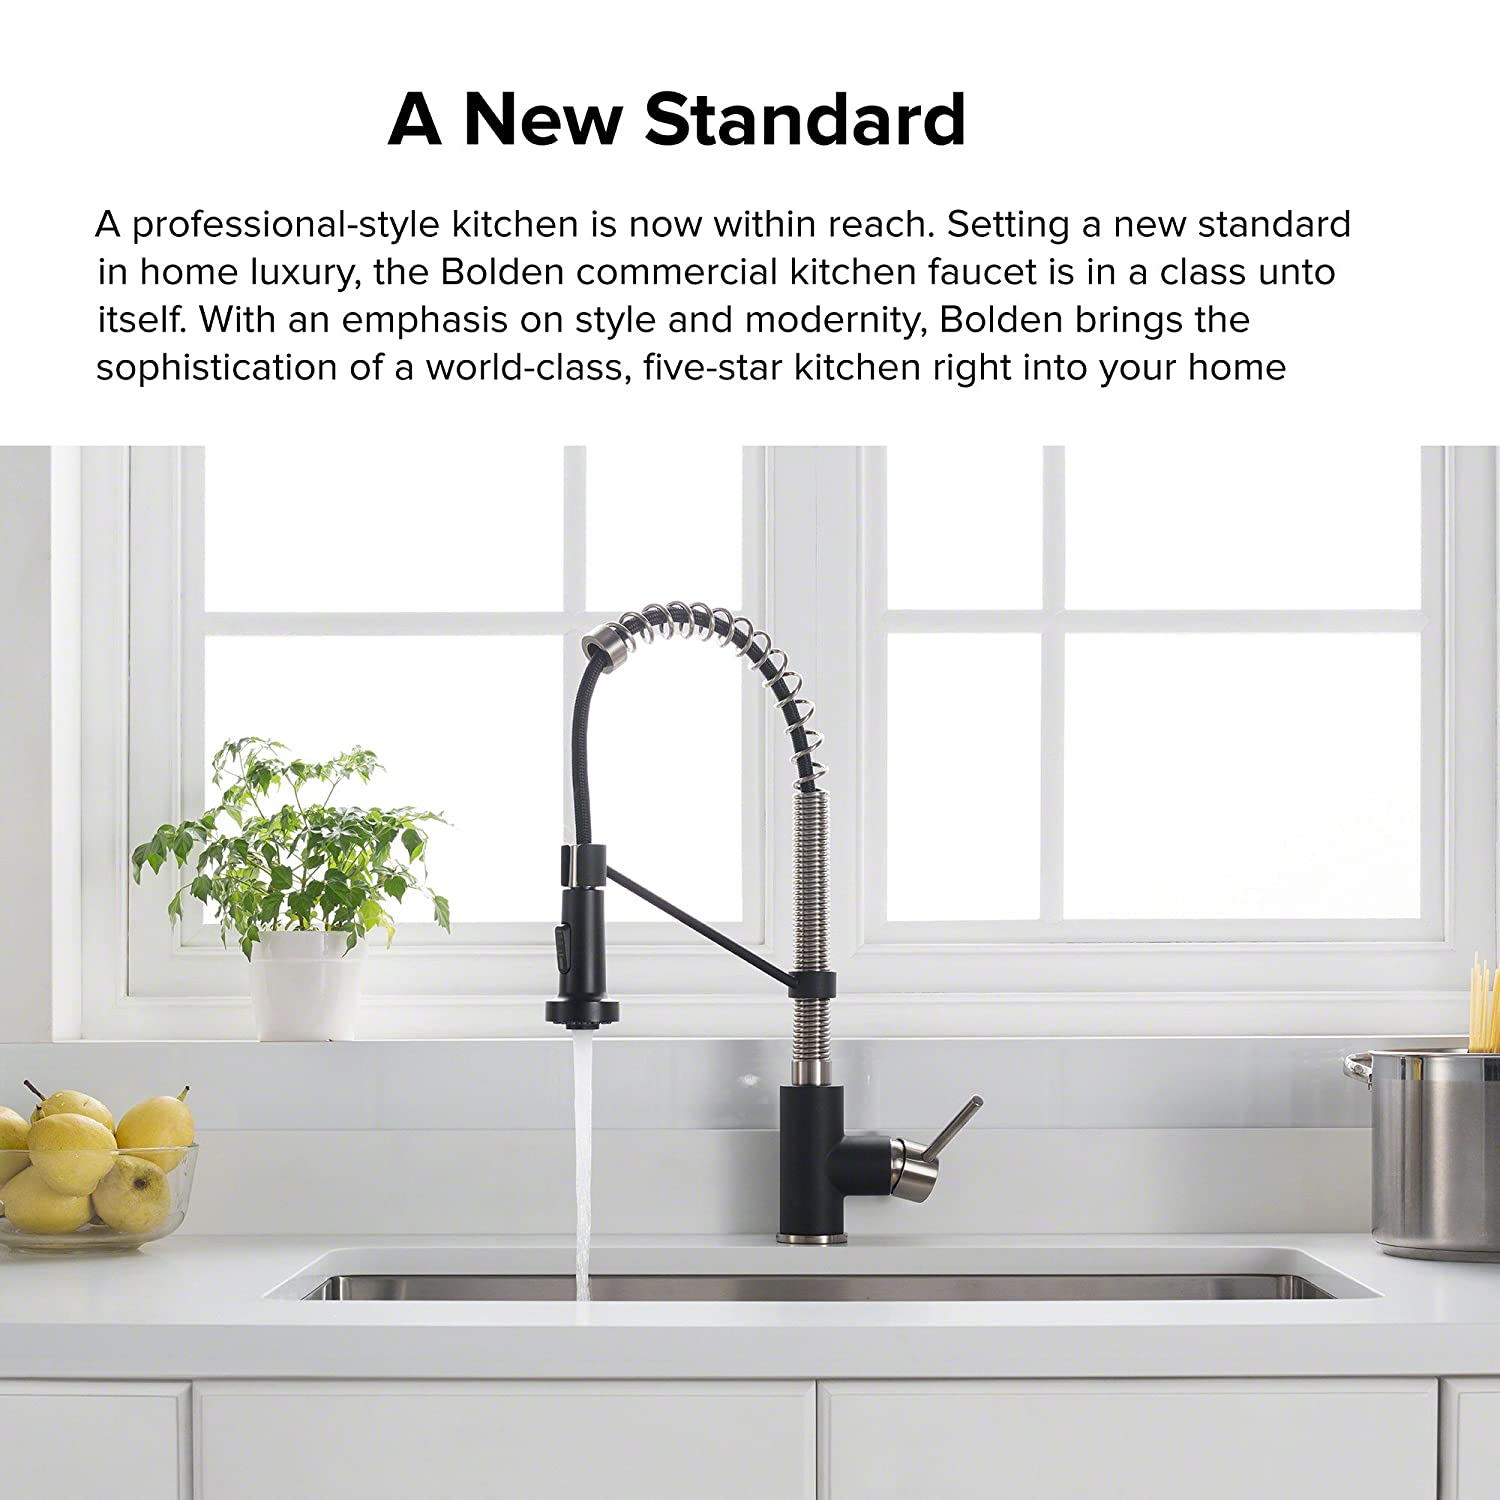 Kraus Kpf 1610ssmb Bolden Single Handle Commercial Kitchen Faucet Parts Diagram For Gourmet 150 450 With Dual Function Pull Down Sprayhead Stainless Steel Matte Black